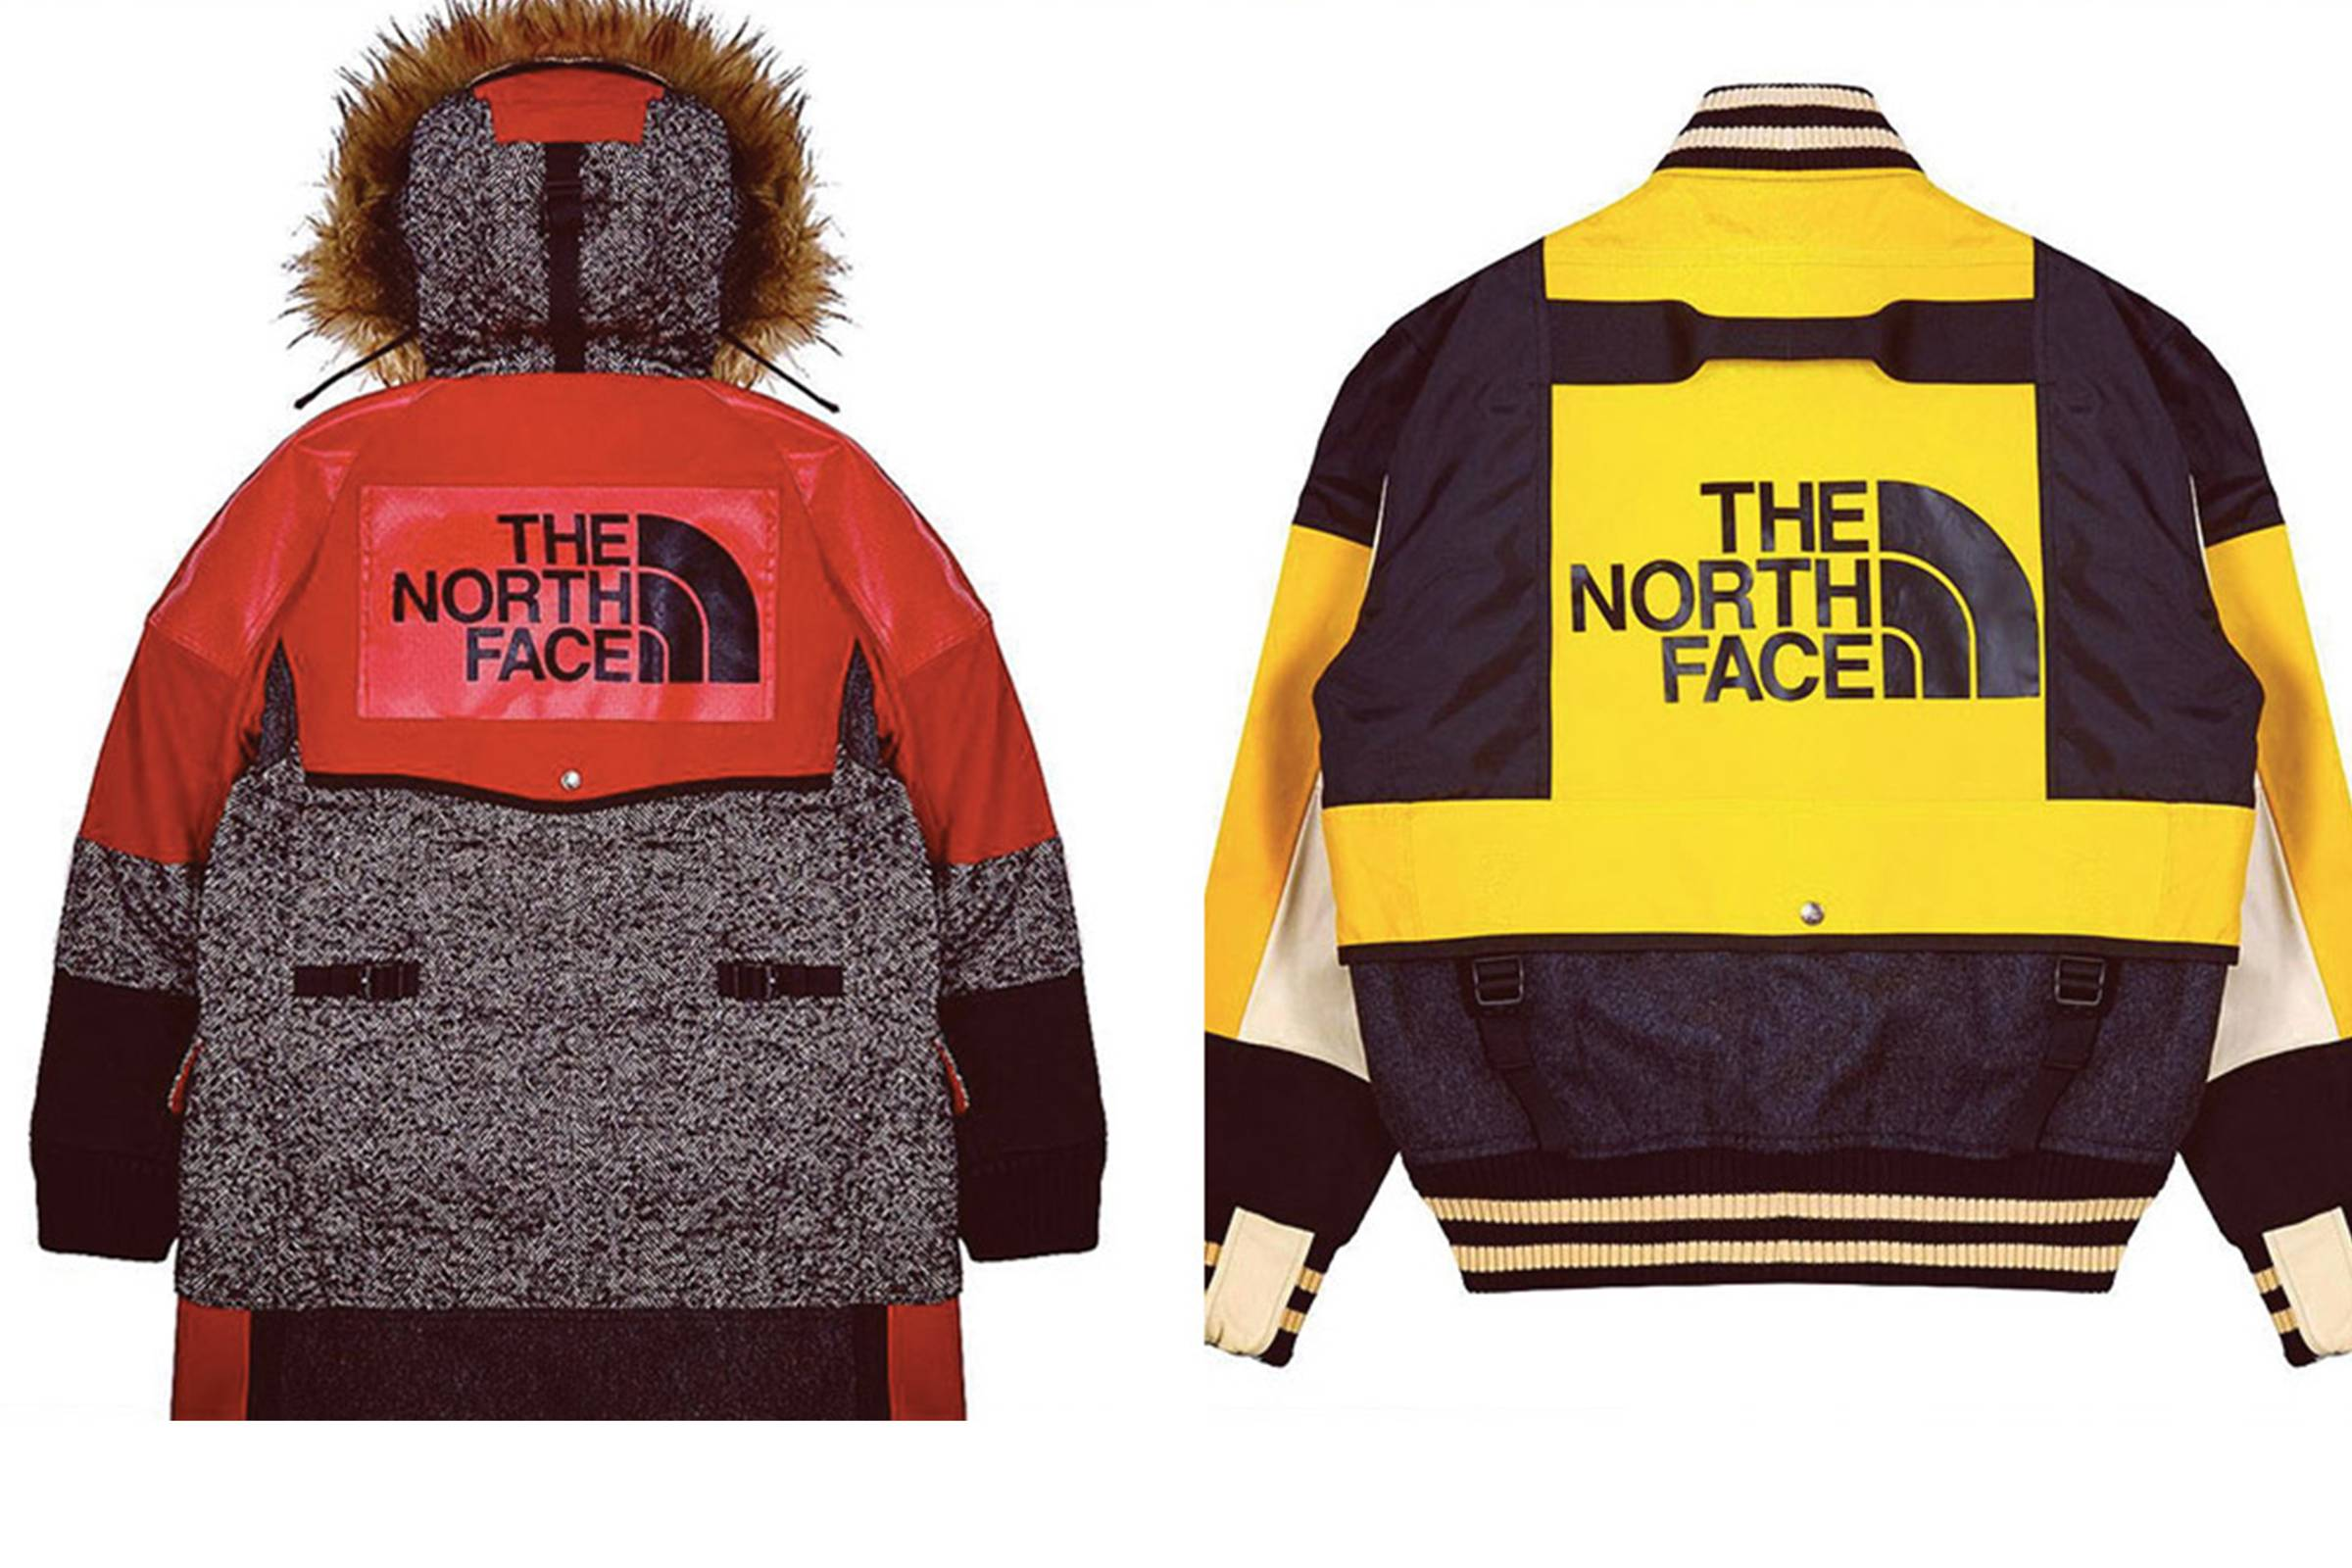 Junya Watanabe x The North Face (2017)